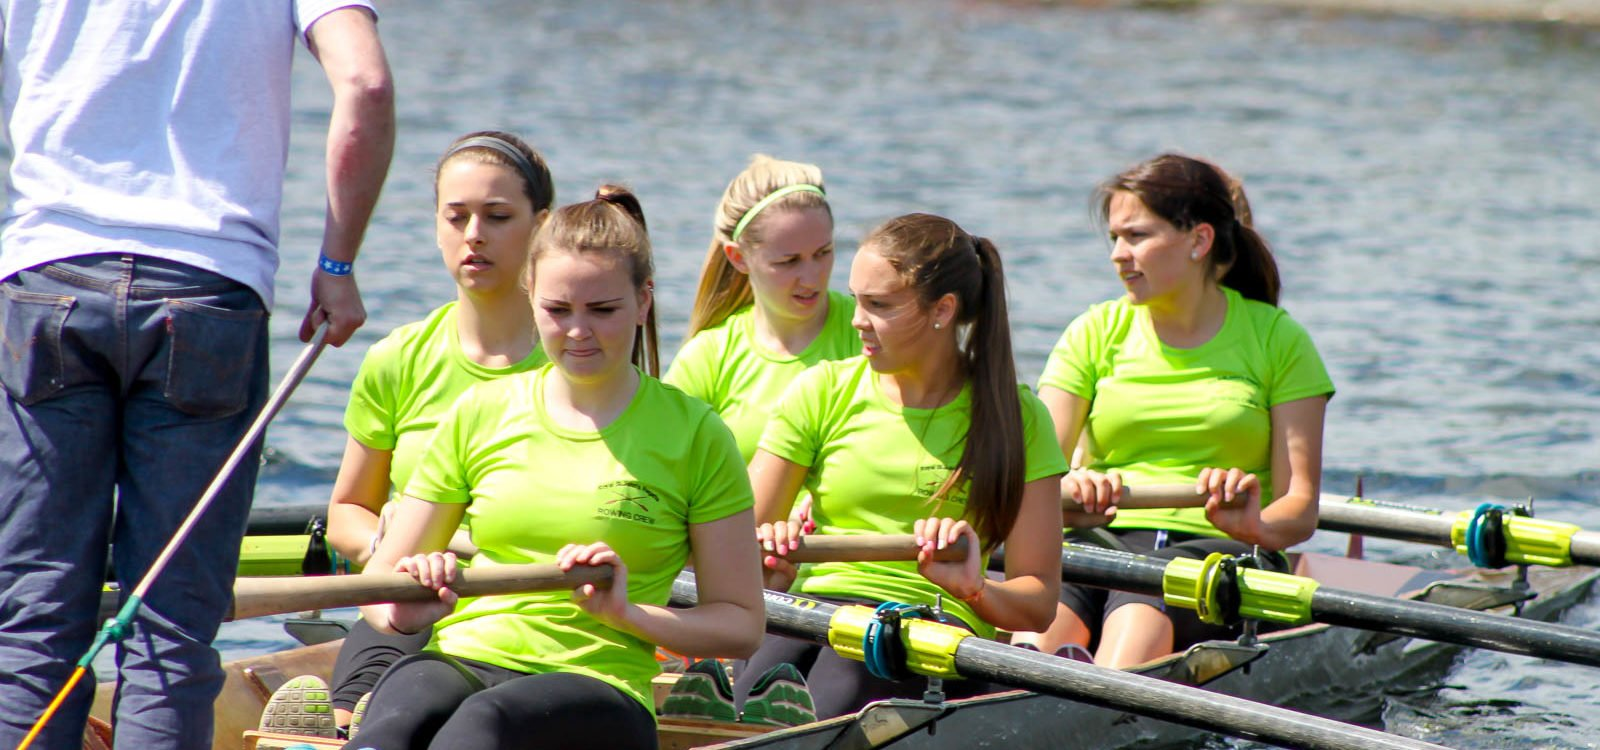 Youth Rowing Crew